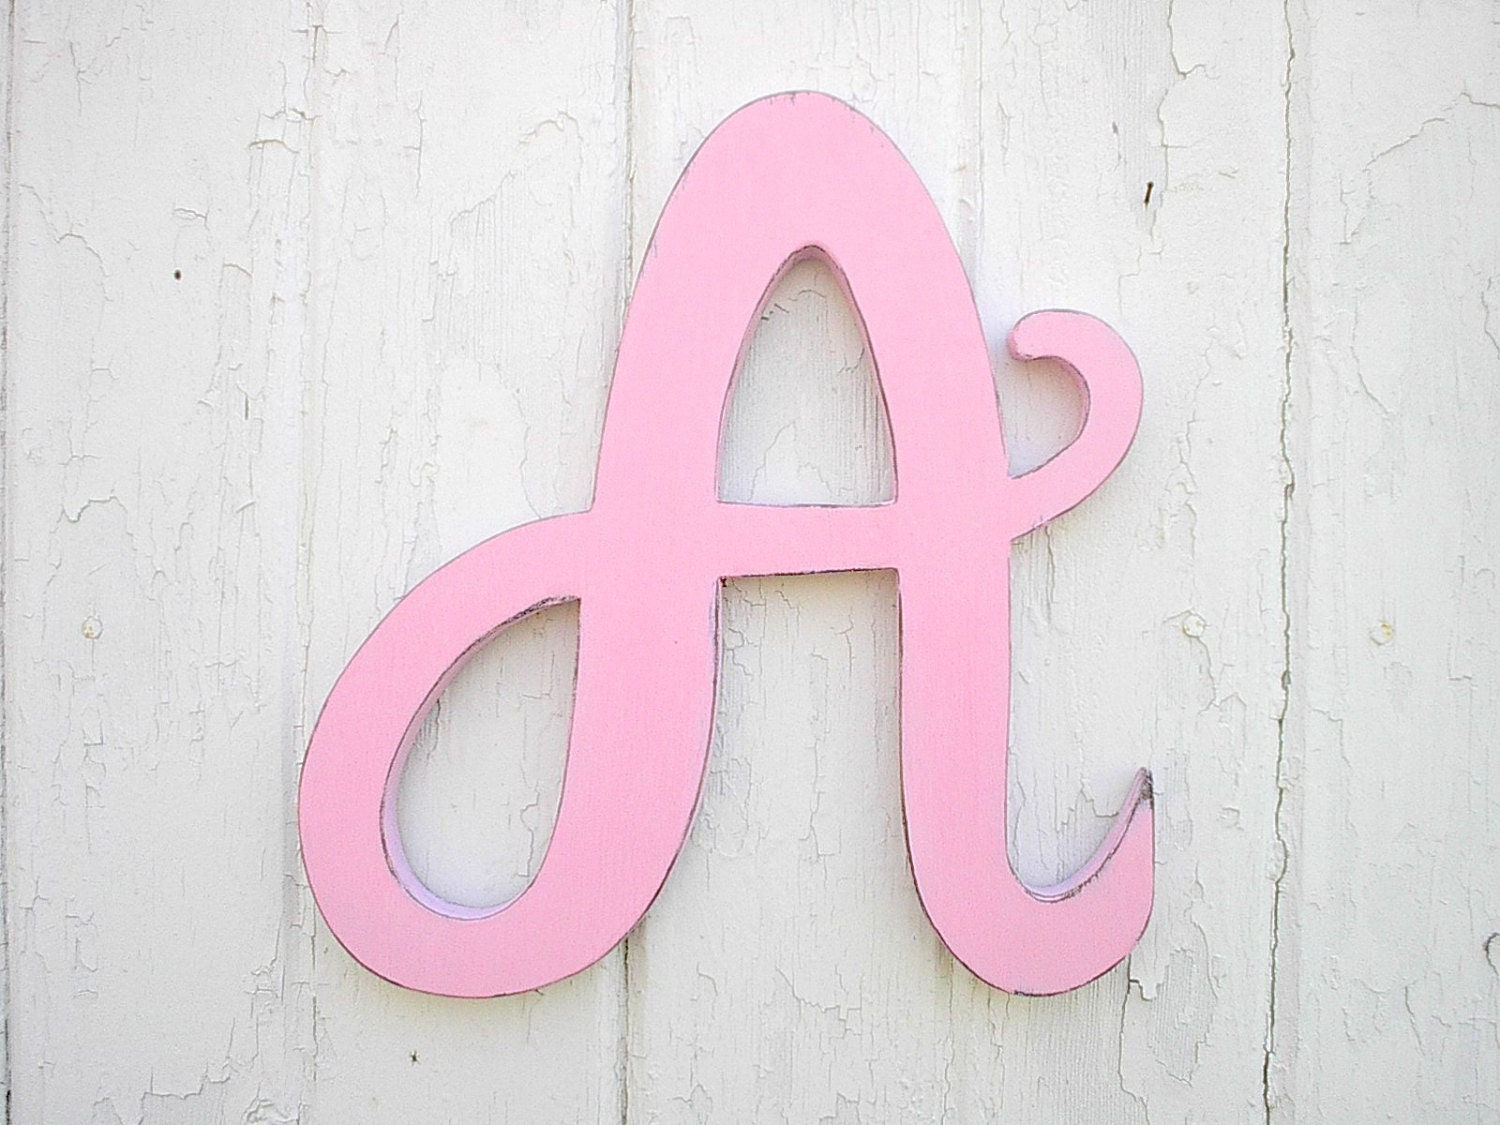 Wooden Letters A 12 Light Pink Feminine font Baby Girl